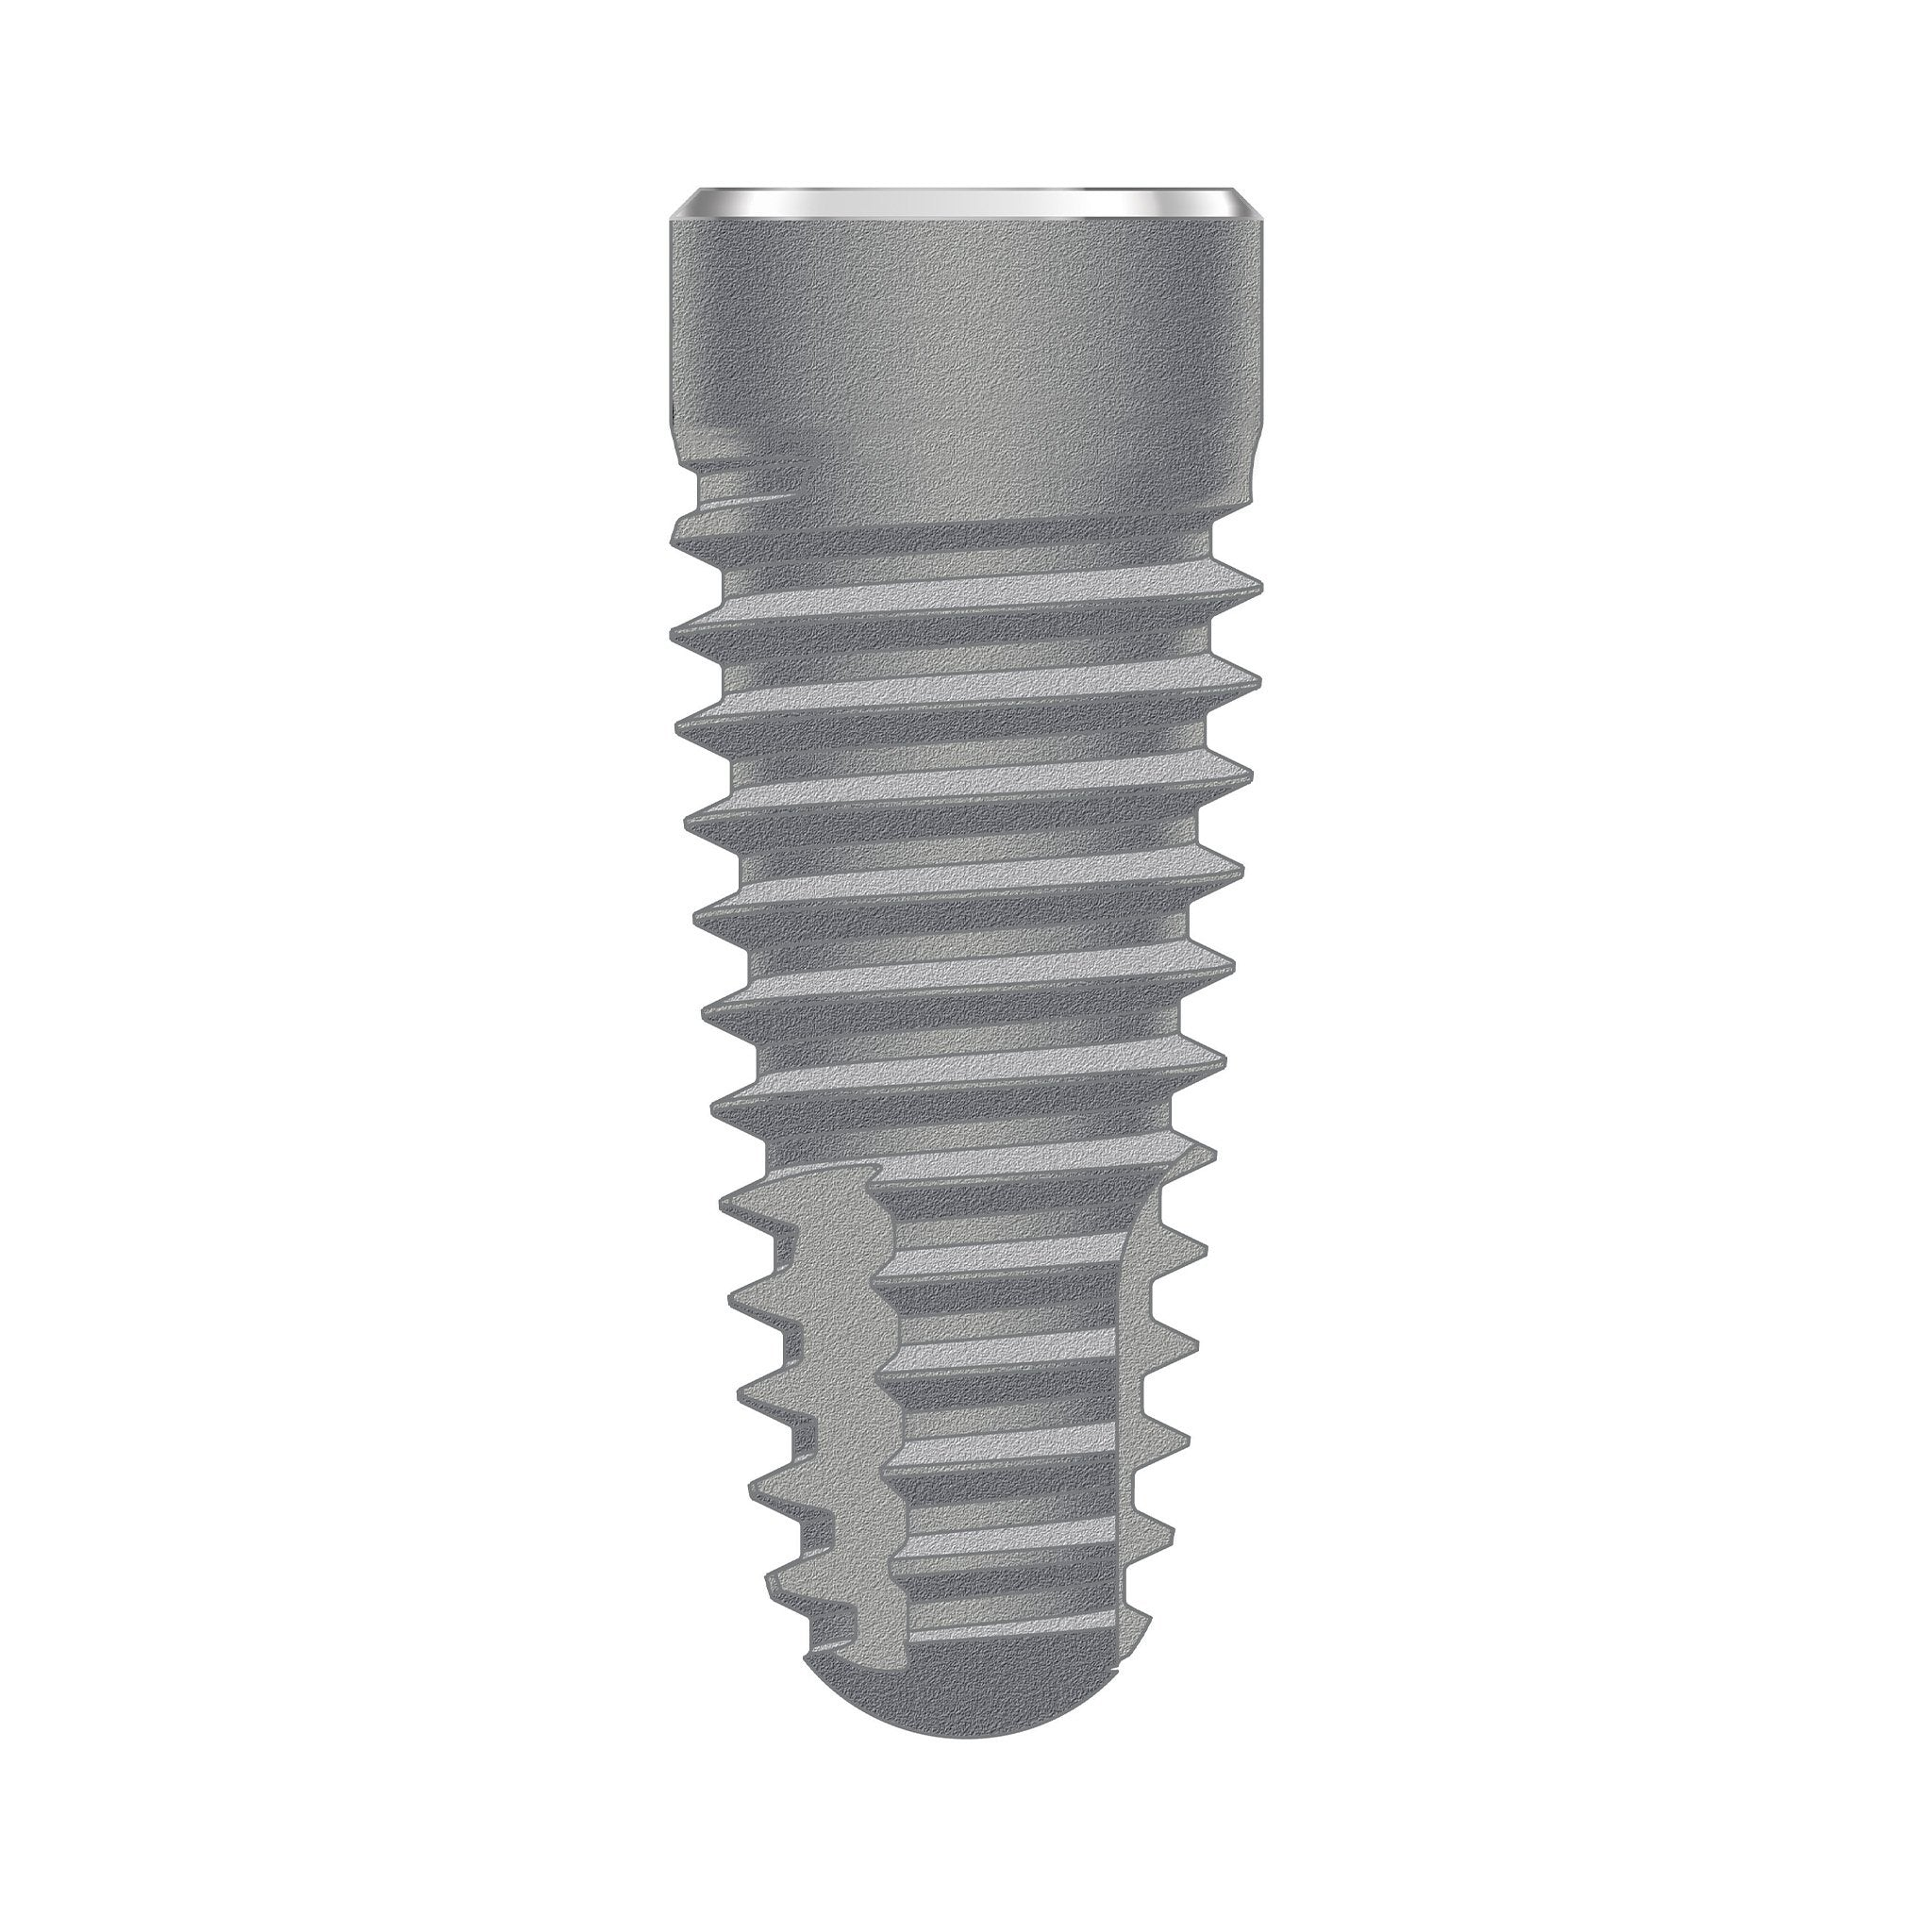 PrimaConnex® Tapered Implant WD Ø 5.0 x 10mm | K3